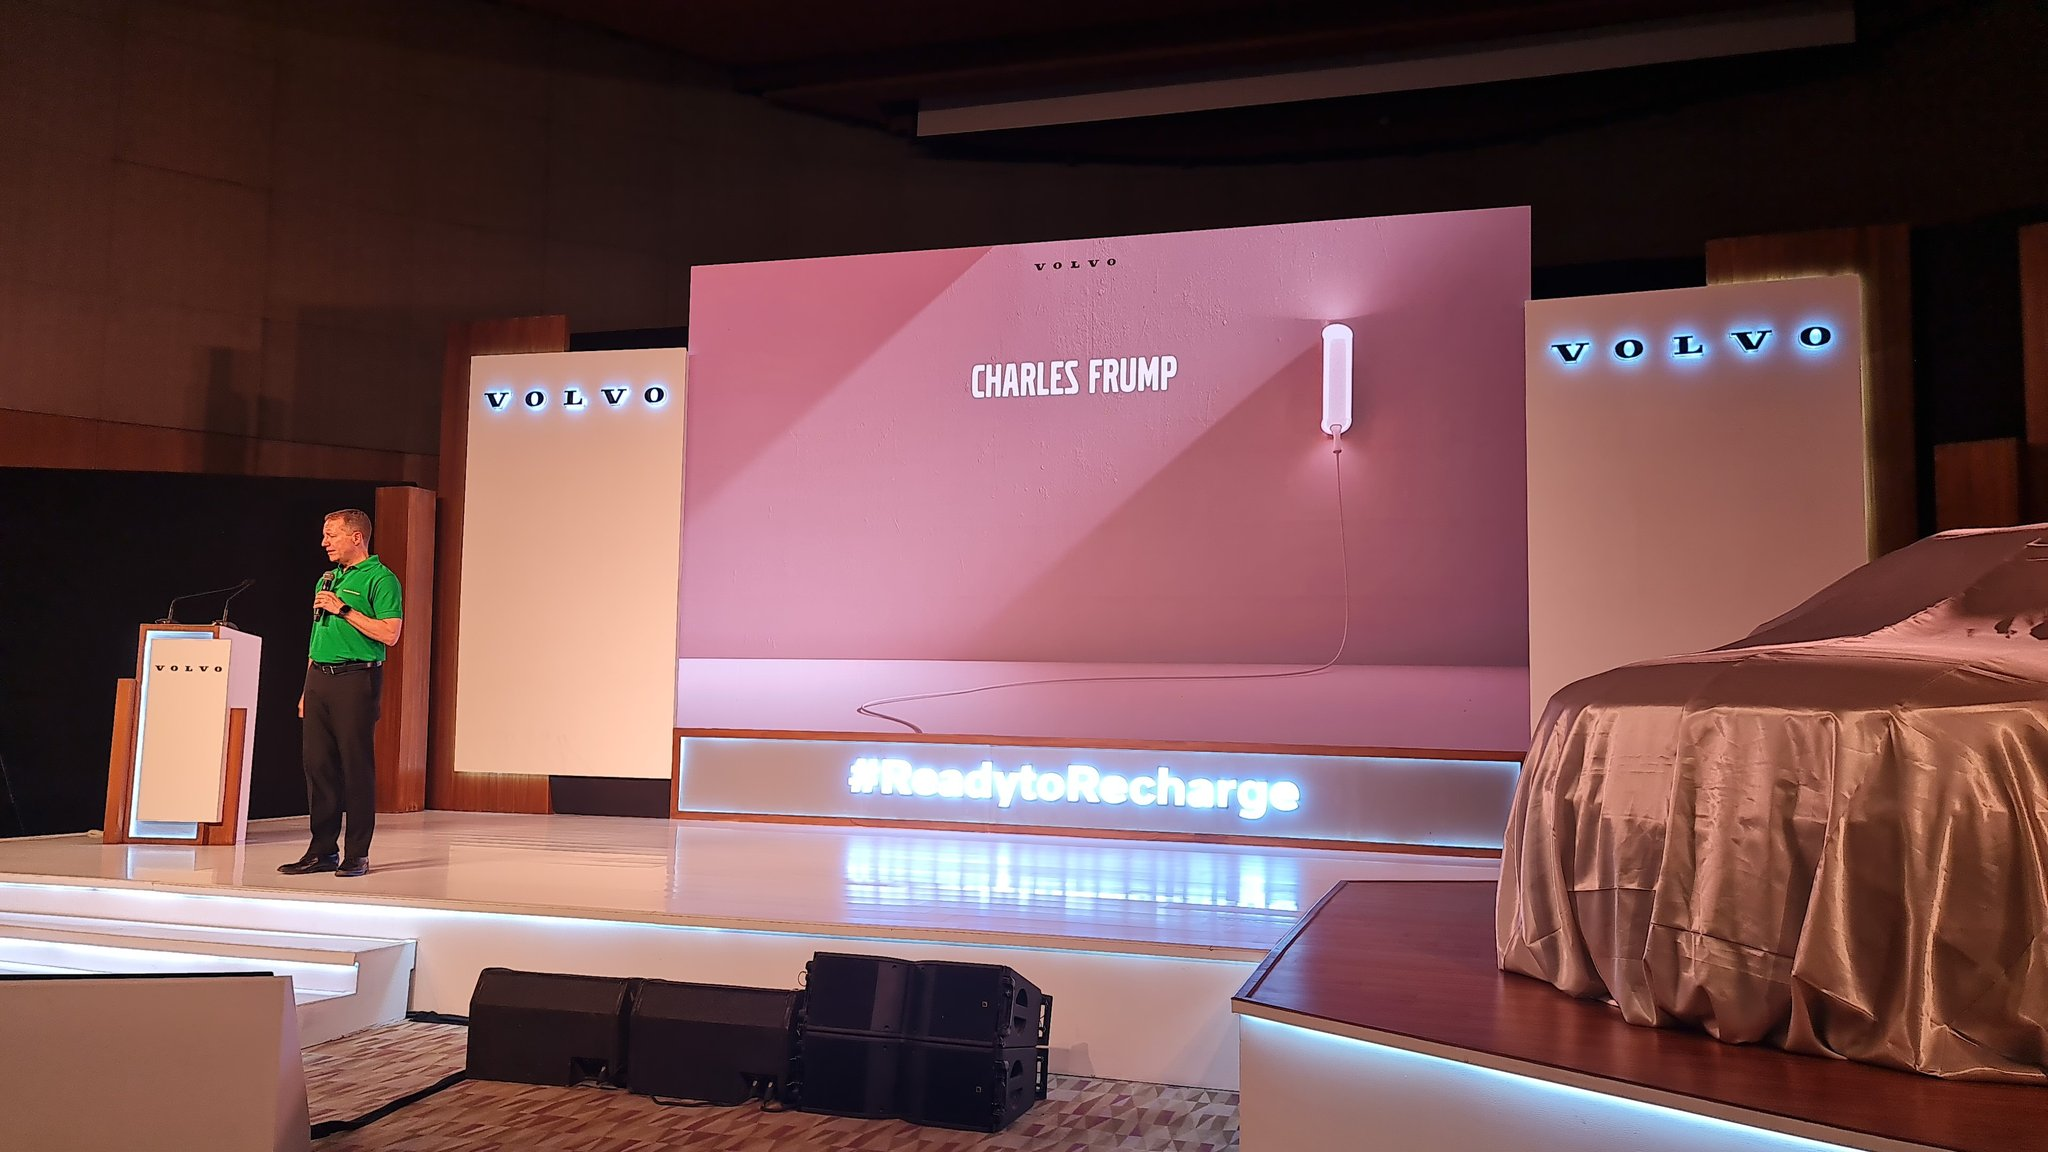 Charles Frump, the former MD of Volvo India takes to the stage to introduce Volvo India's plan for India.